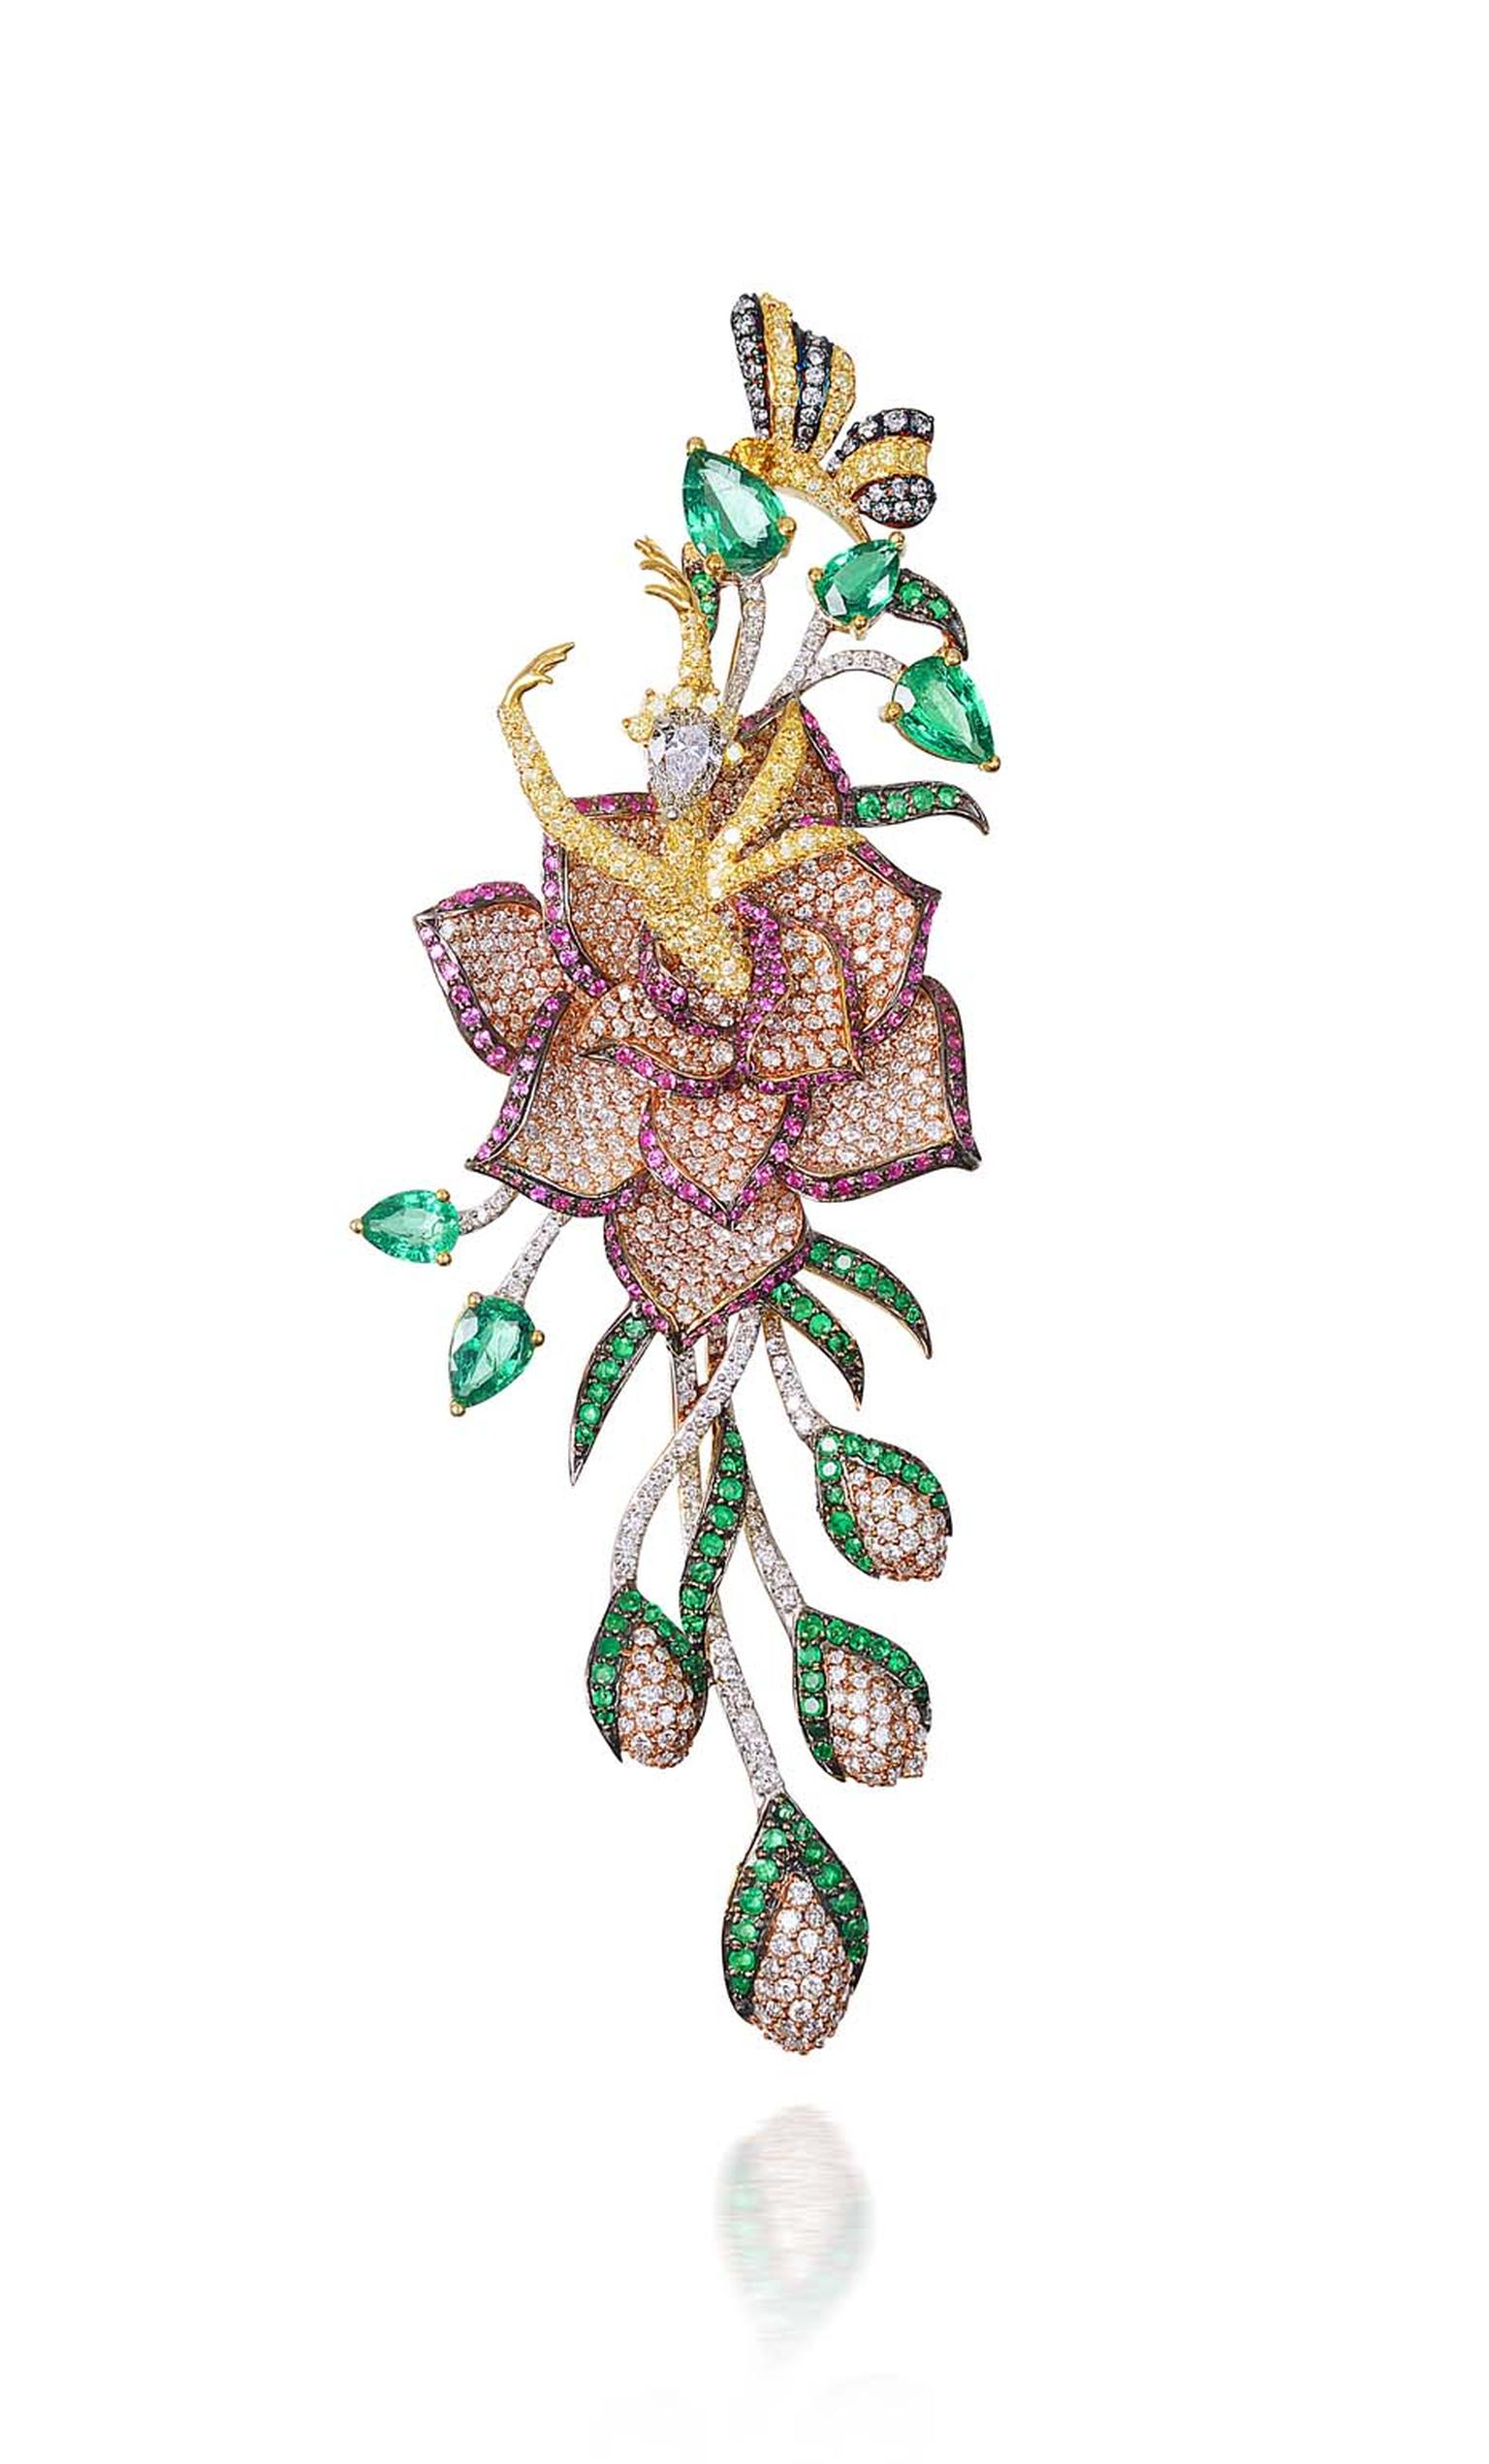 Lot 4, a brooch and hairpiece by Hazoorilal Jewellers, studded with white and yellow diamonds alongside Gemfields emerald and rubies (estimate: INR 2,100,000 - 2,500,000; $35,000 - 42,000)